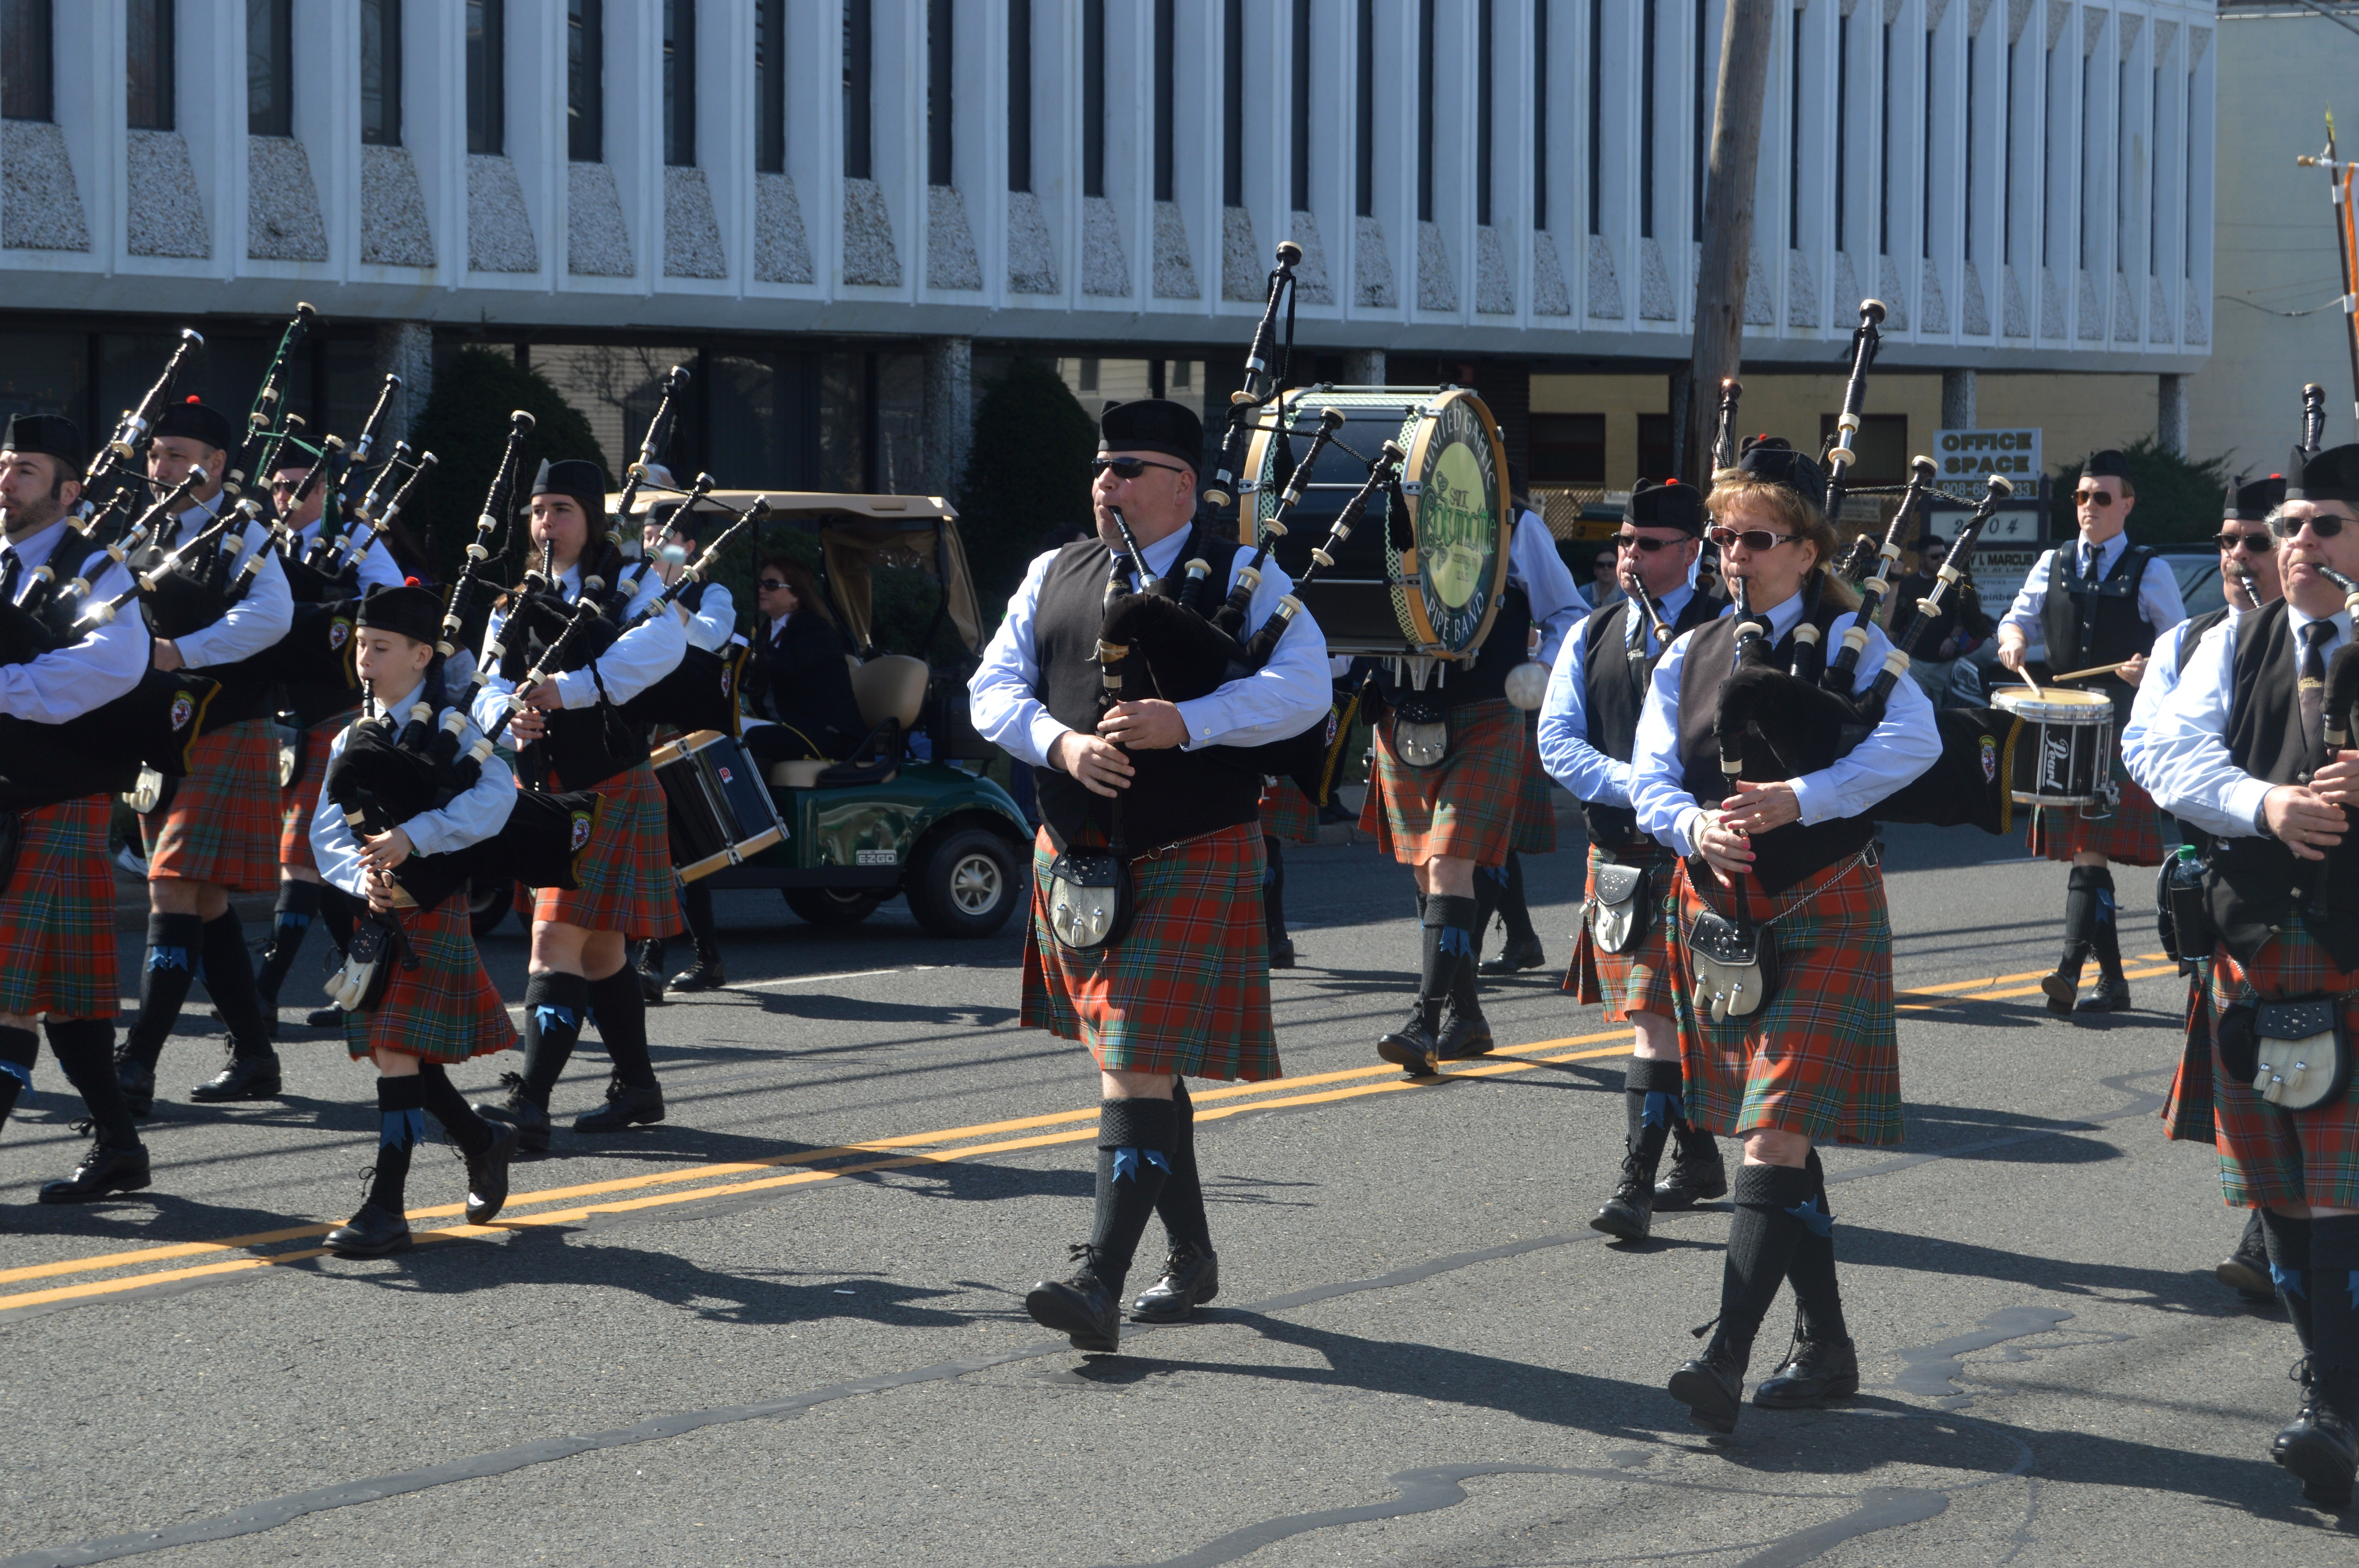 c143eacc3c7dd80d9b5f_St._Patrick_s_Day_2016_-_pipers2.JPG